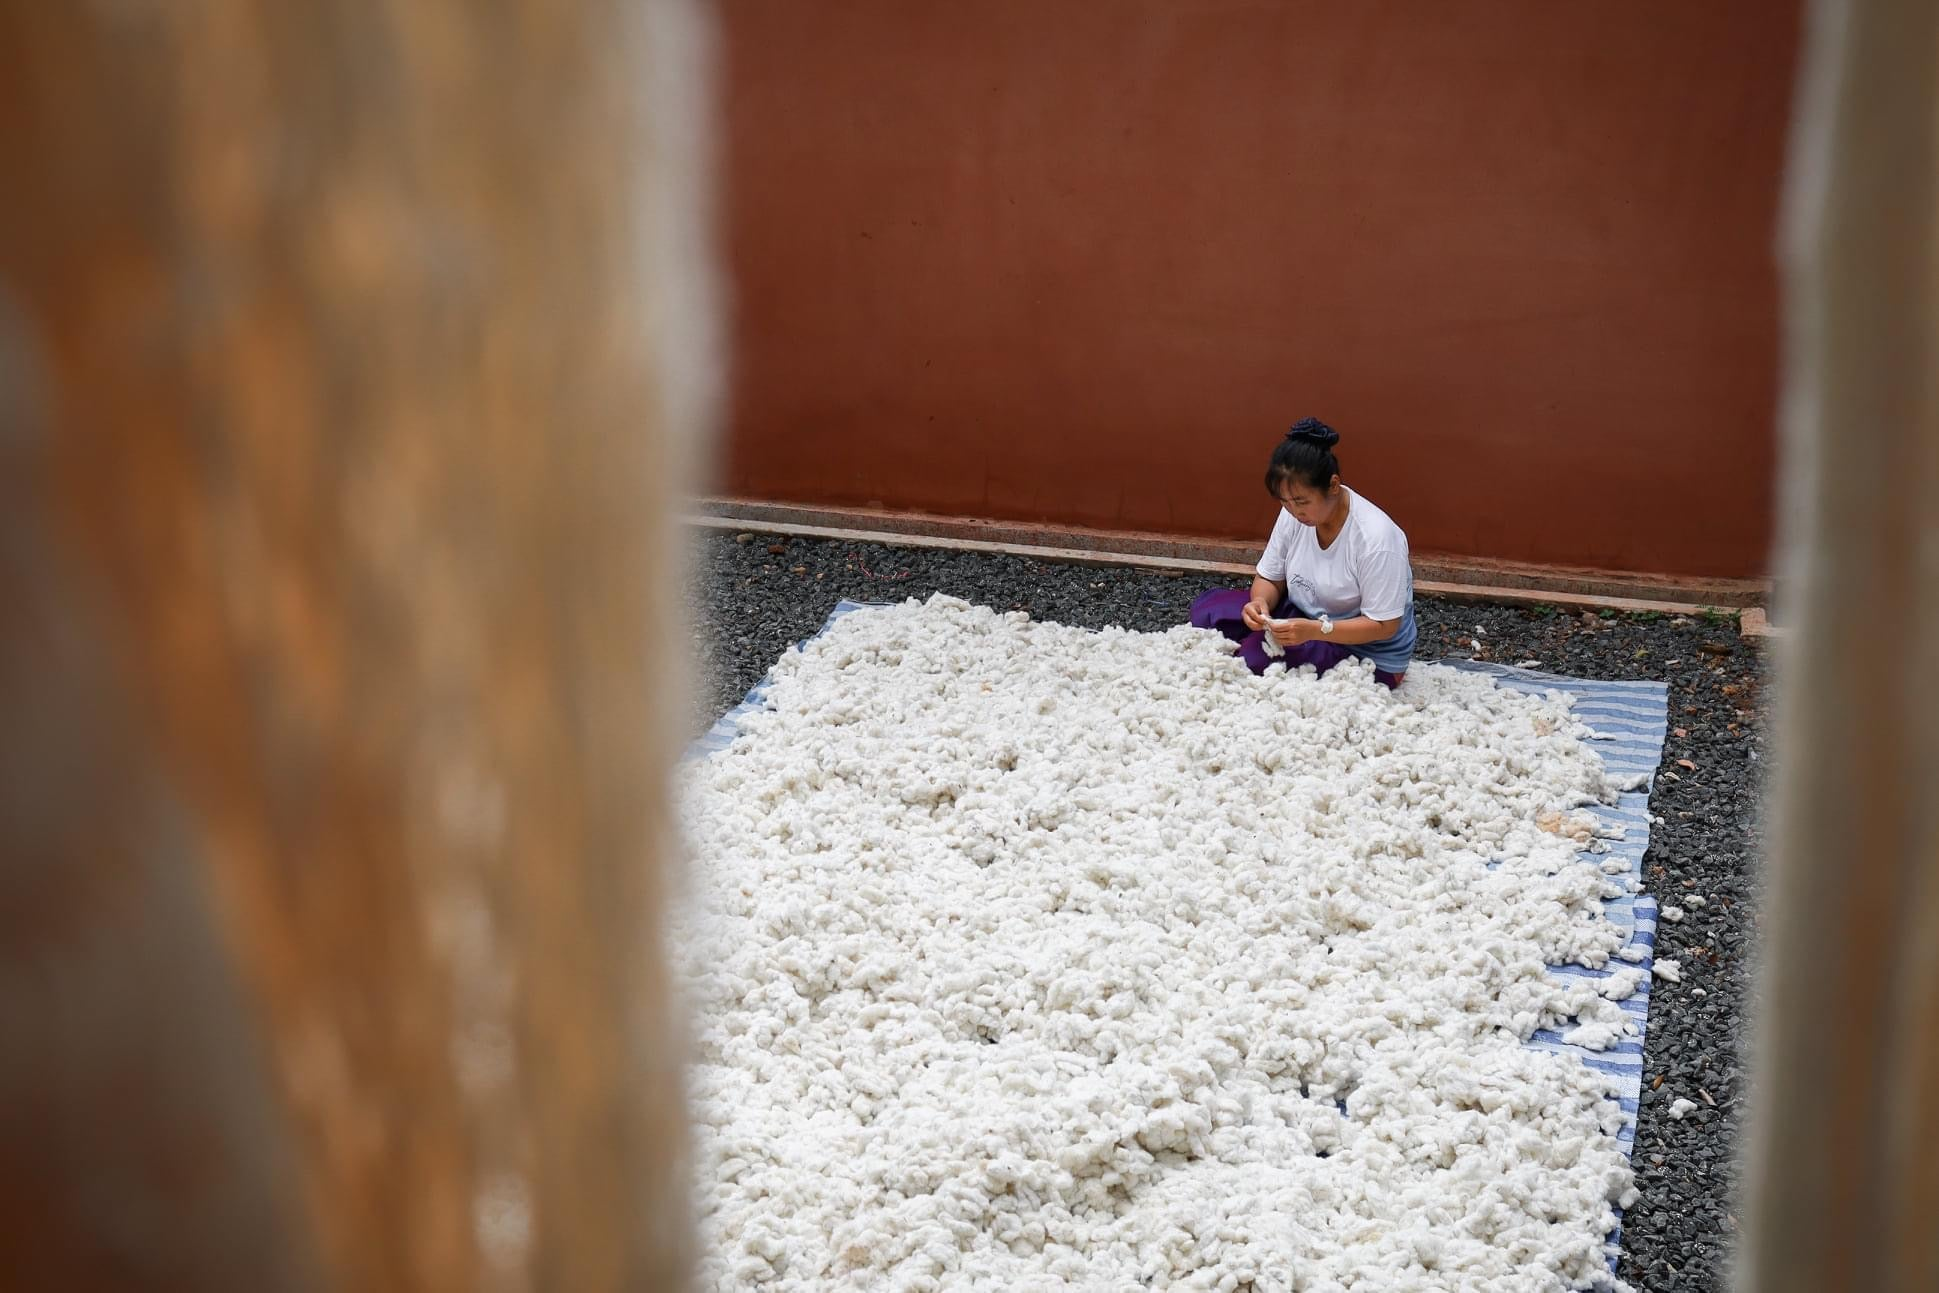 Woman sitting on the floor in a large space, separating the seeds from a large amount of cotton